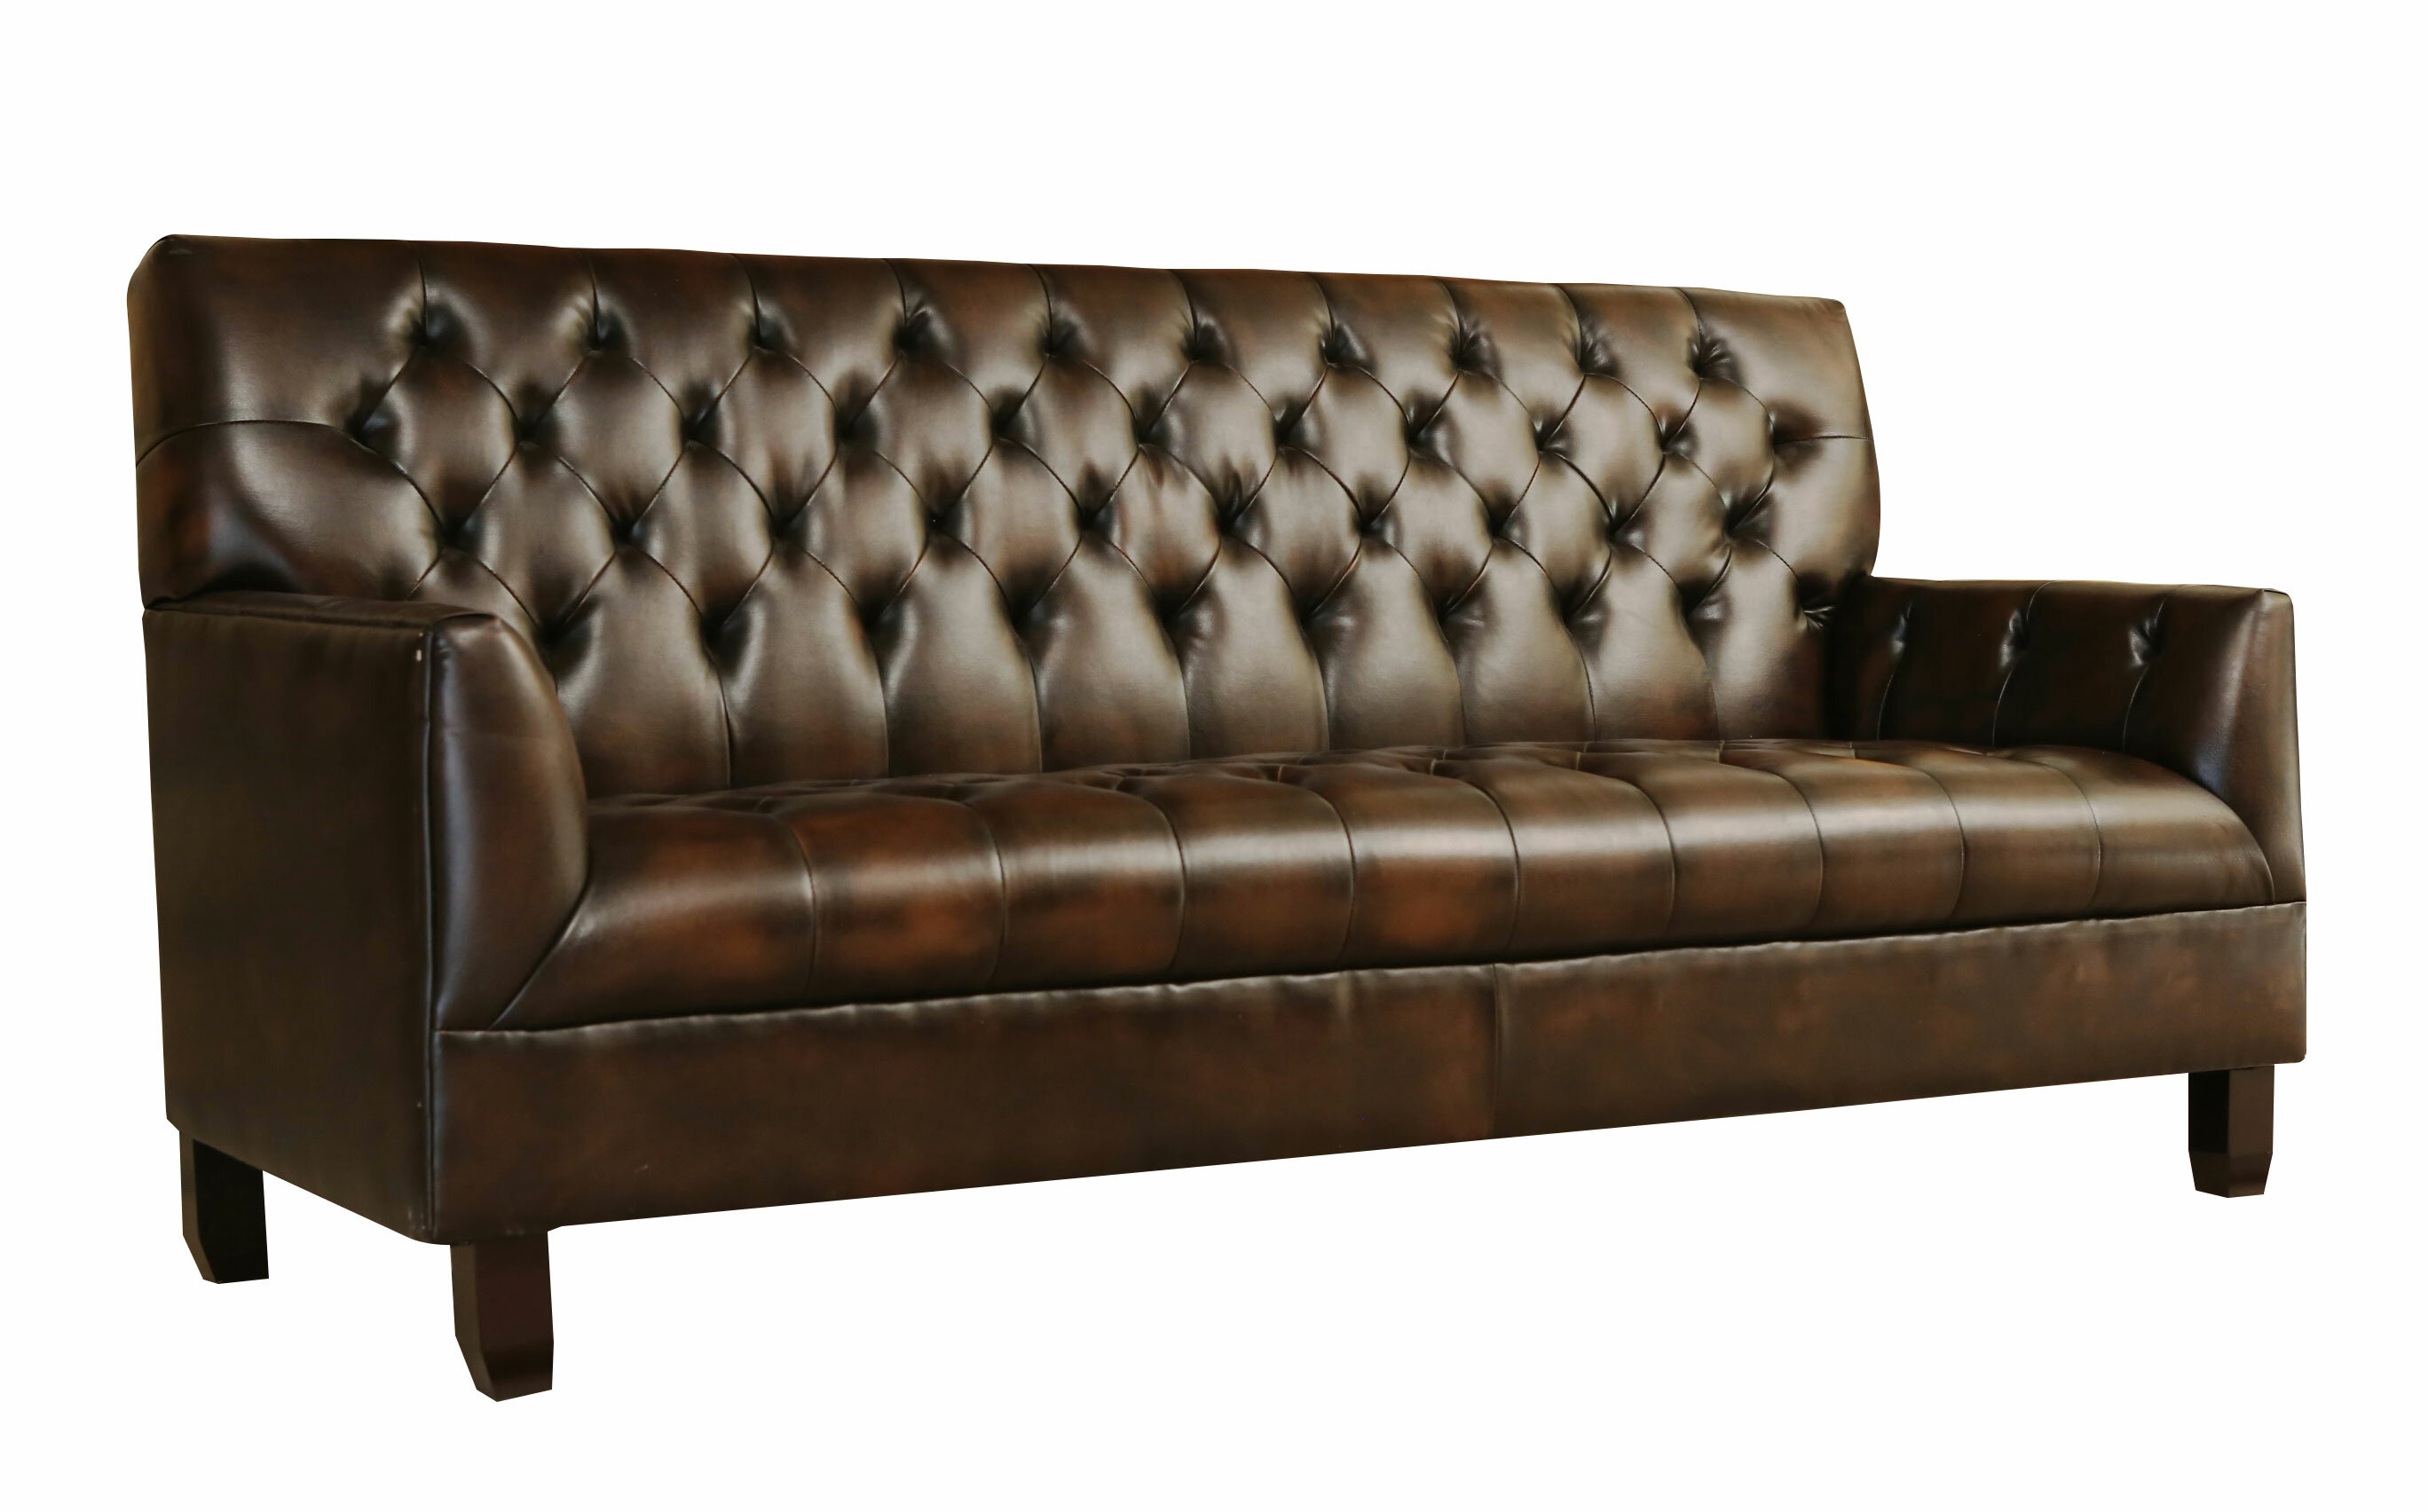 Trent Austin Design Wapiti Ridge Bonded Leather Sofa U0026 Reviews | Wayfair